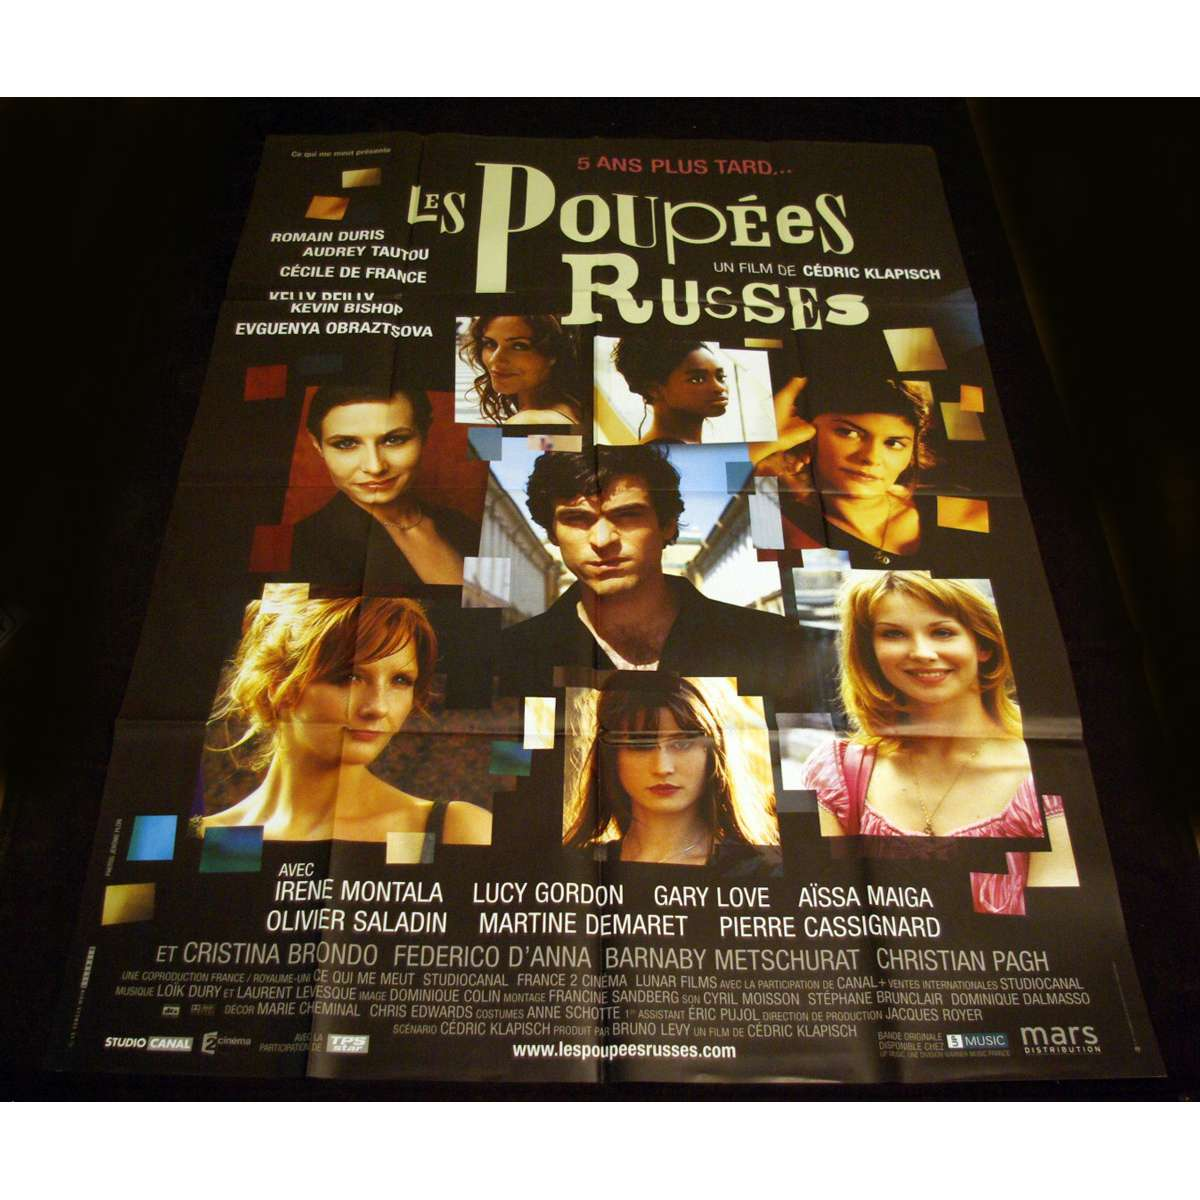 Les poupees russes vintage movie poster for Poupee russe